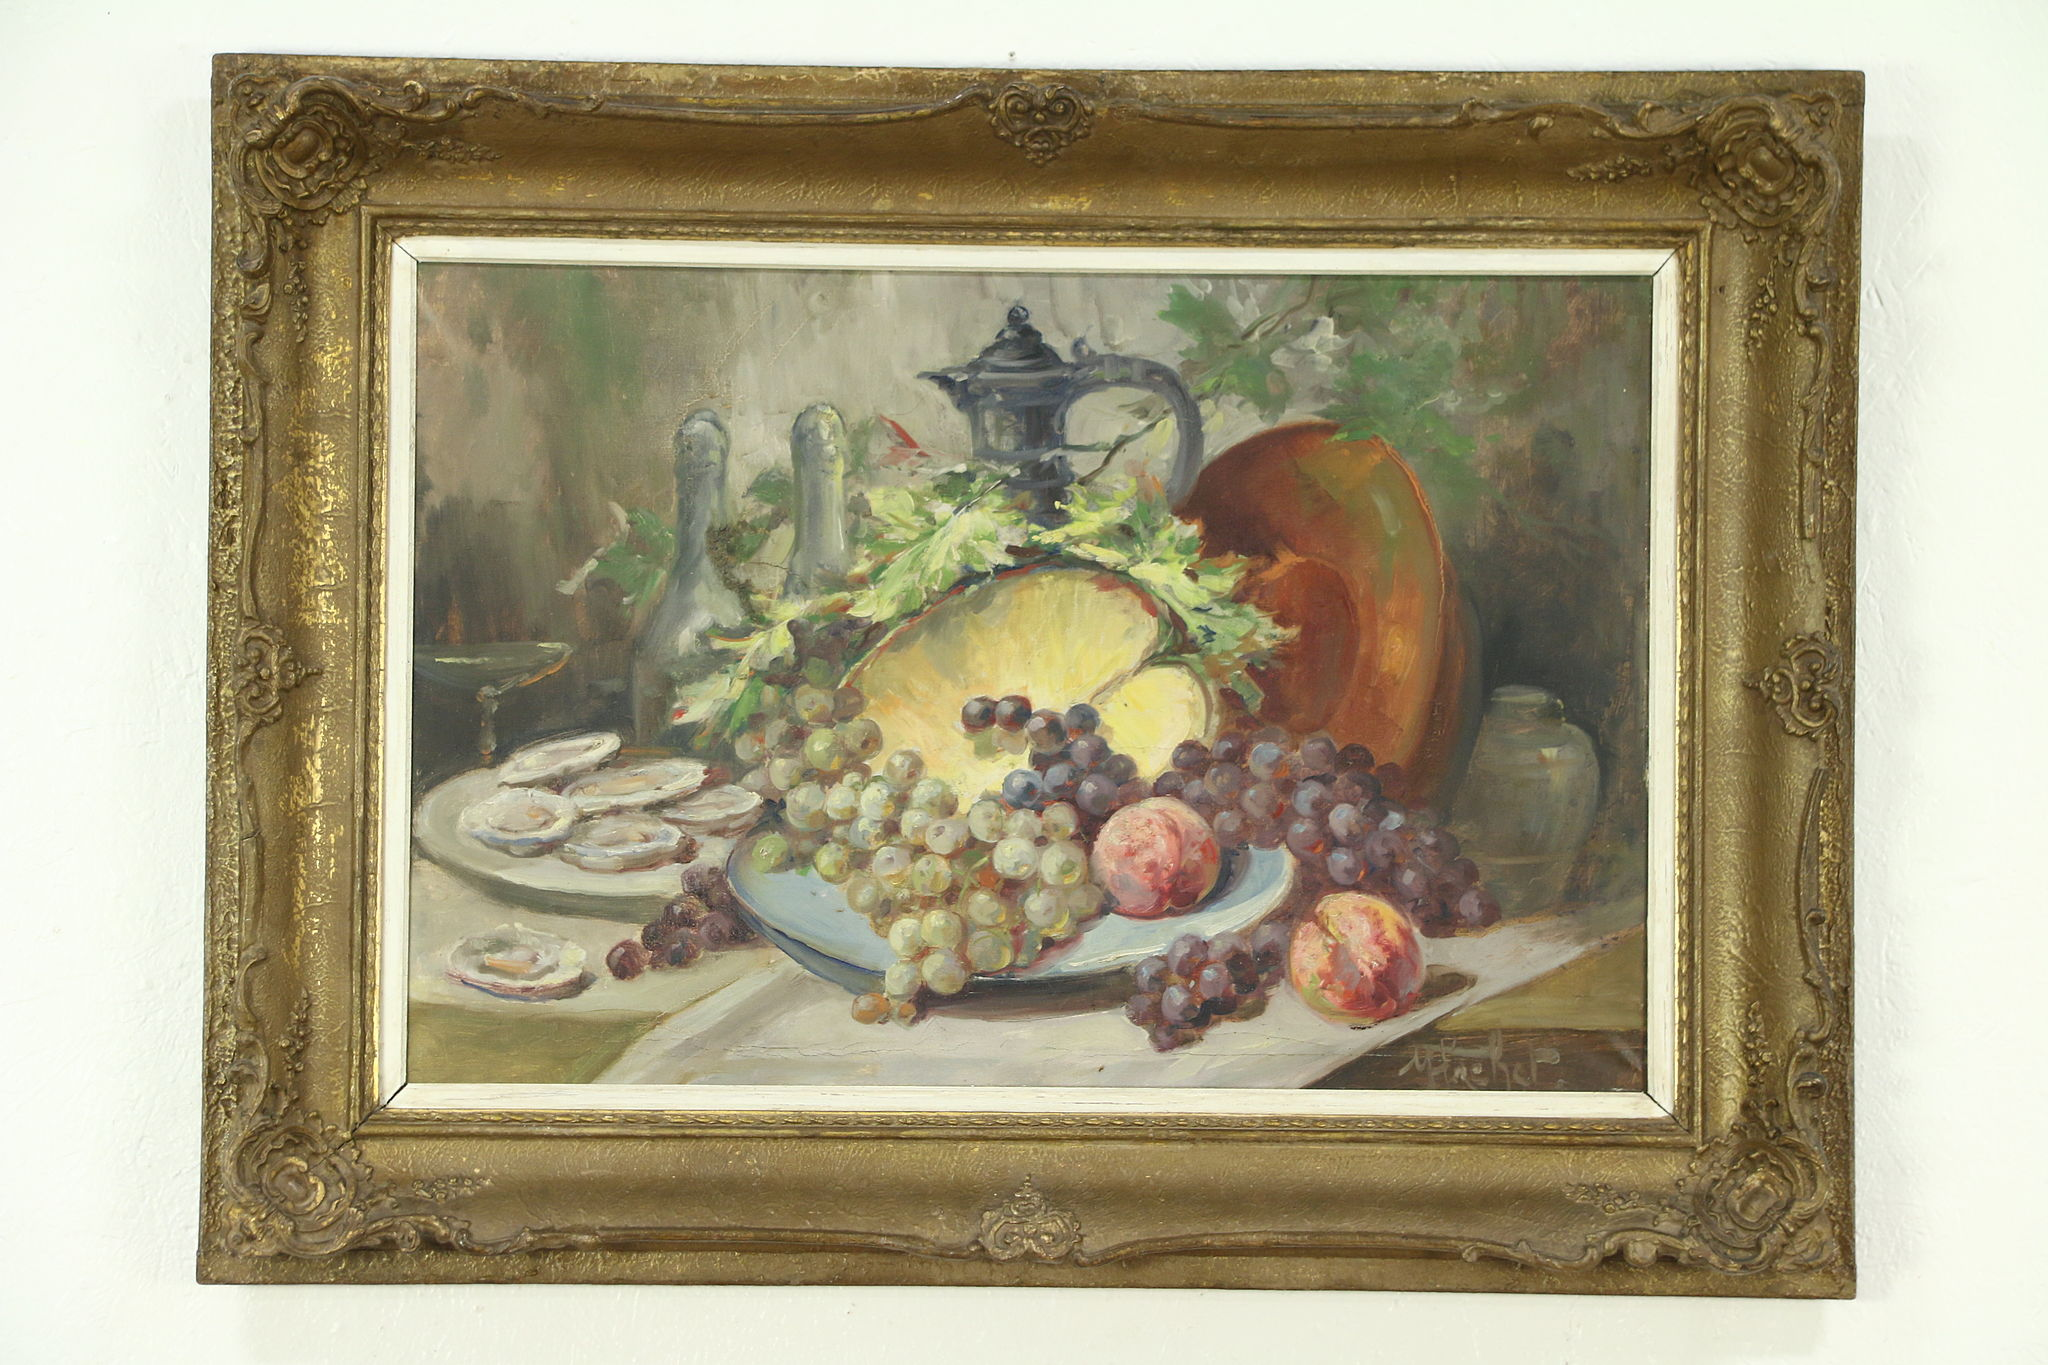 Oysters Amp Fruit Still Life Antique Oil Painting Carved